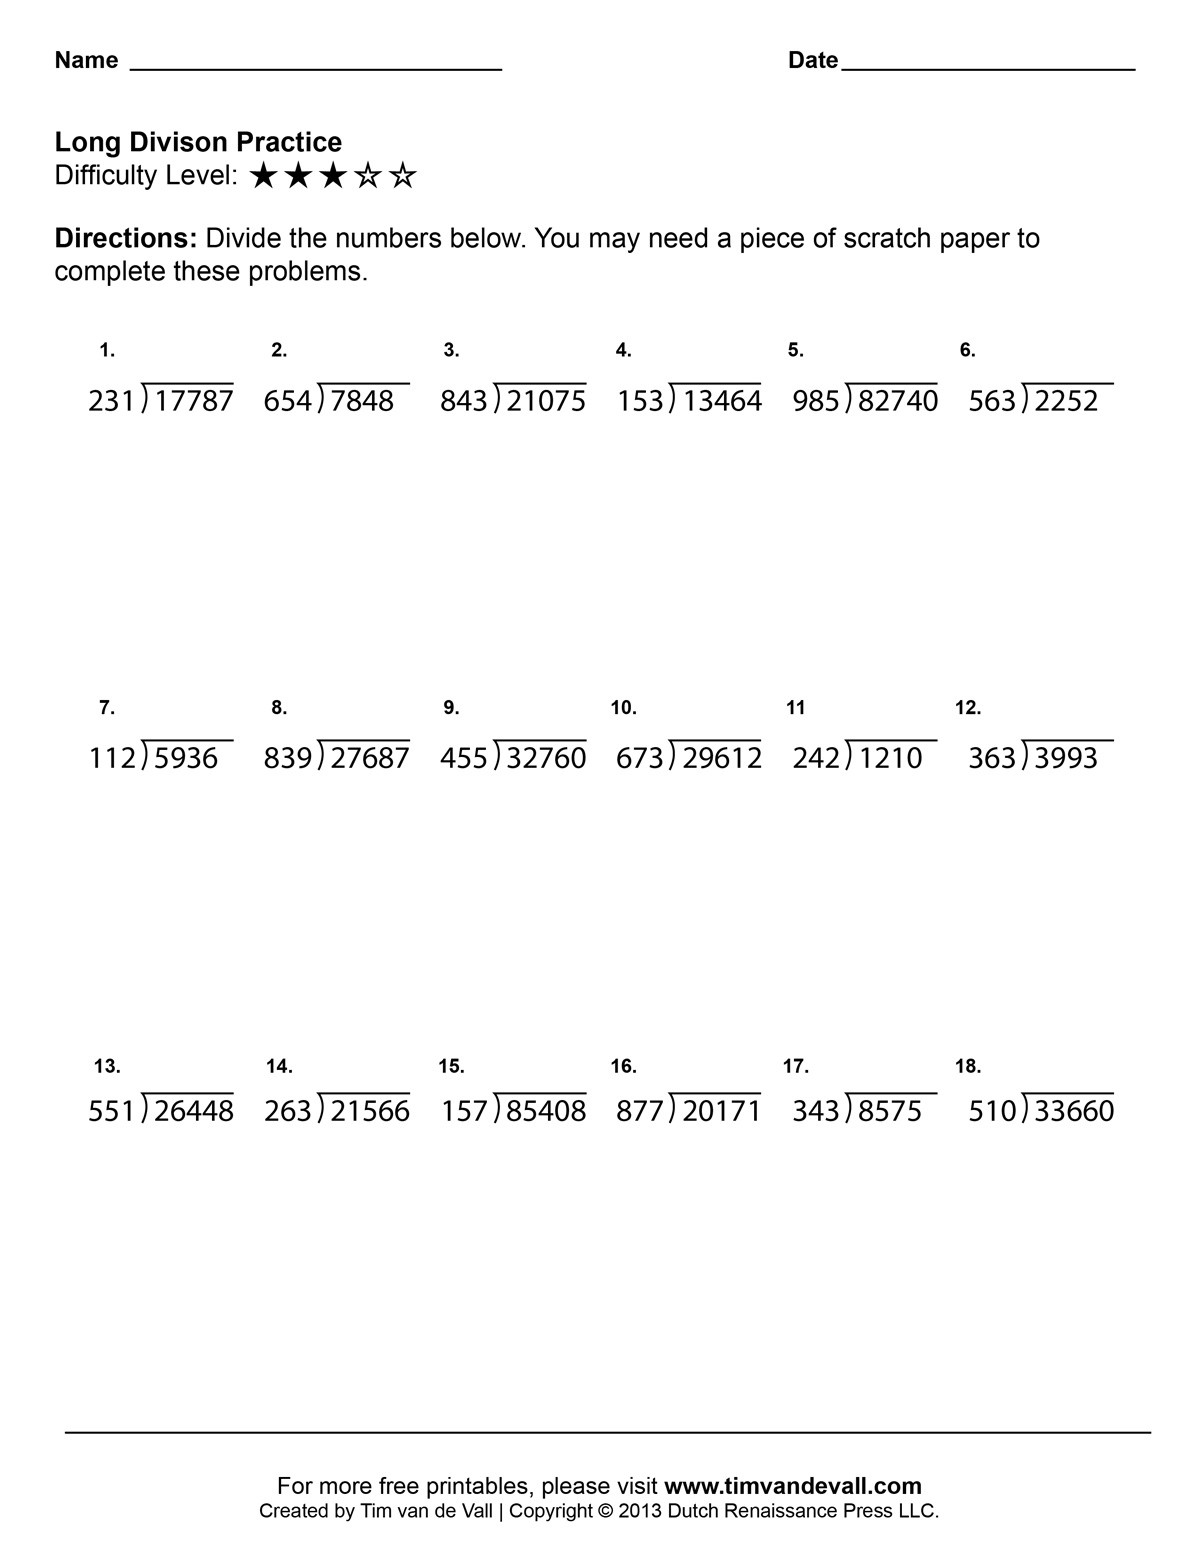 Long Division Worksheets 5th Grade Long Division Worksheets 03 Tim S Printables